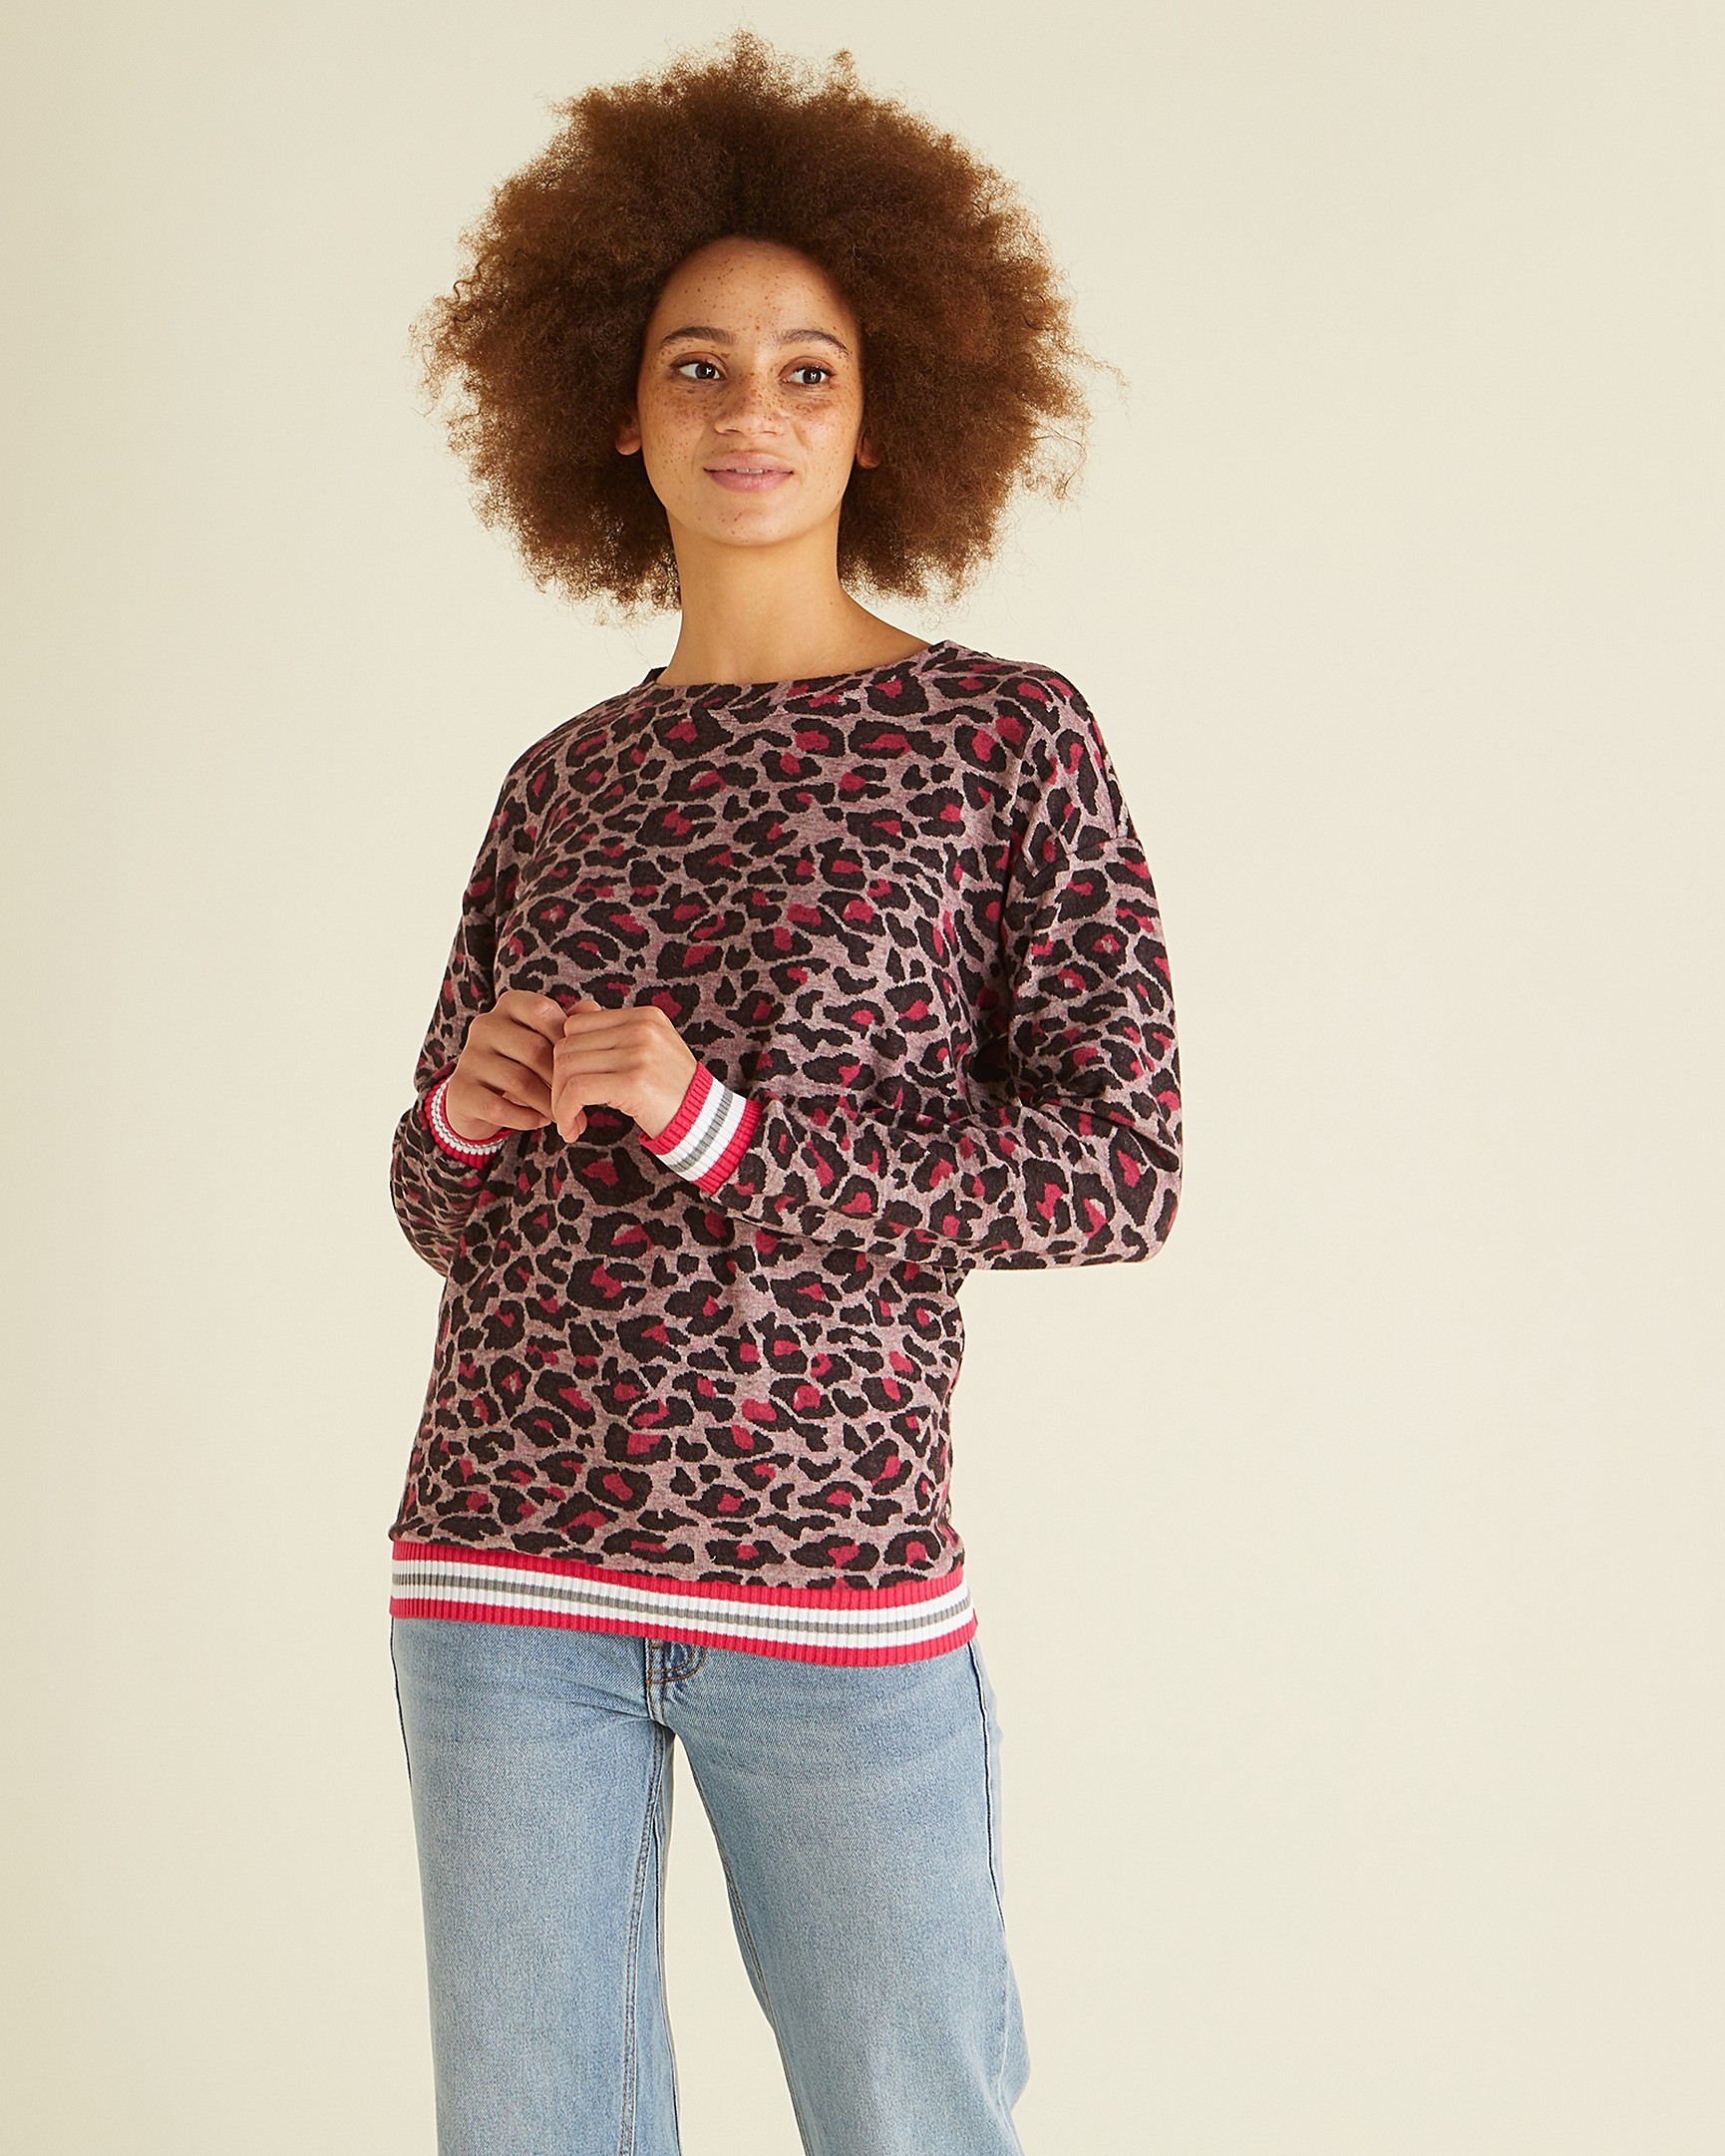 4e2d0cc4329325 Knitwear | Women's Knitted Jumpers & Dresses | Oliver Bonas